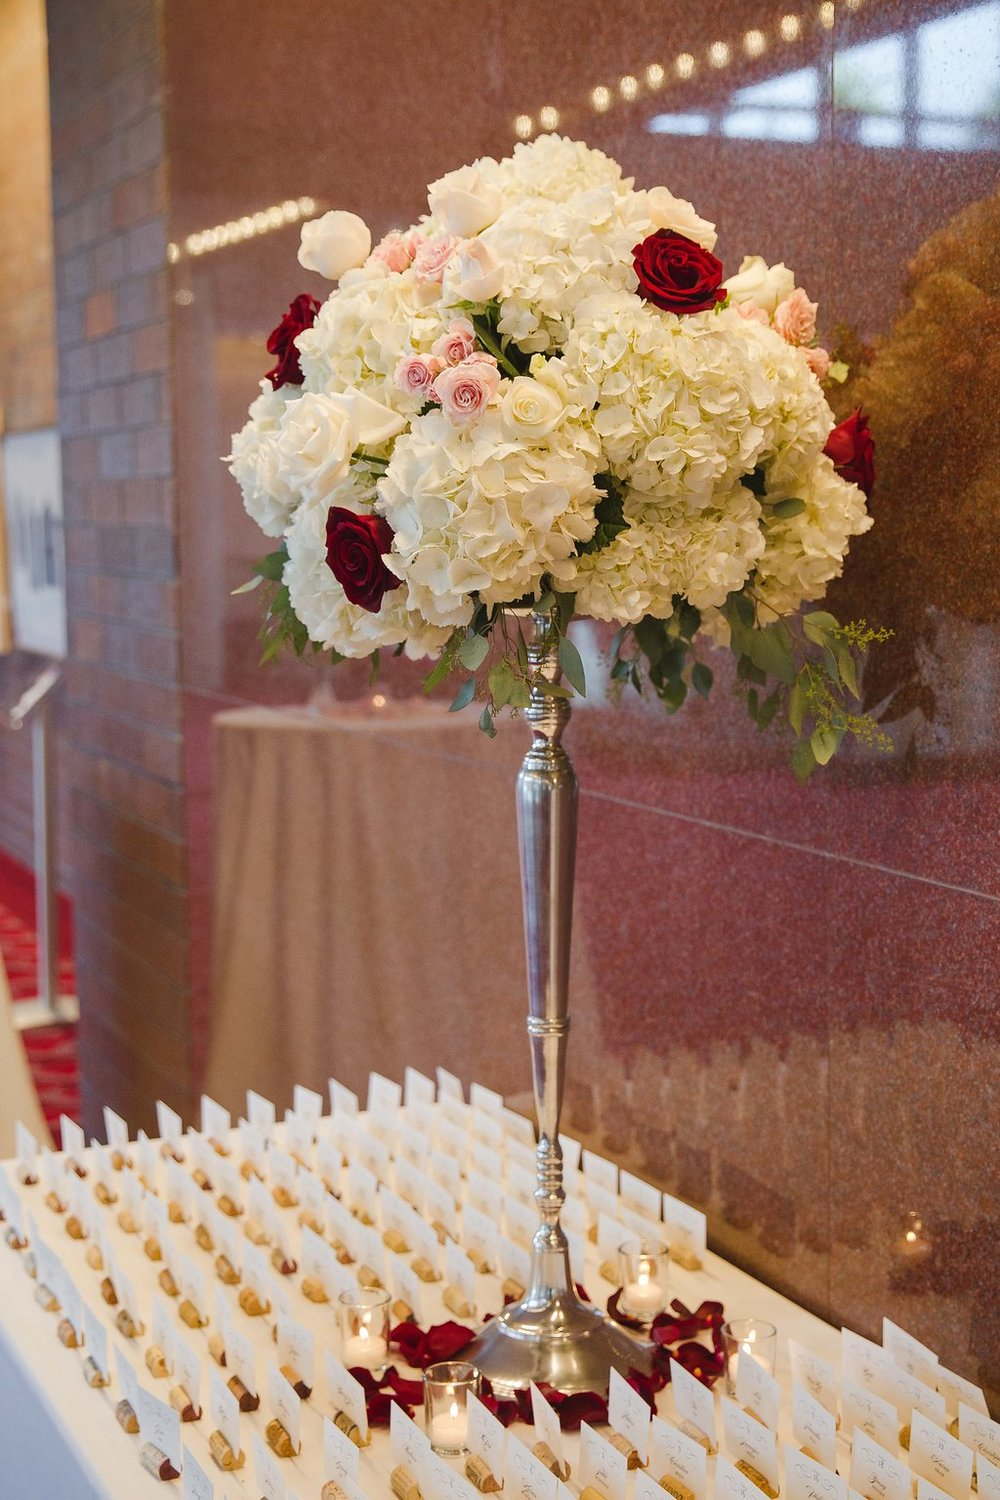 Wine-inspired details were found throughout the event, including cork escort cards and a wine bottle guestbook.